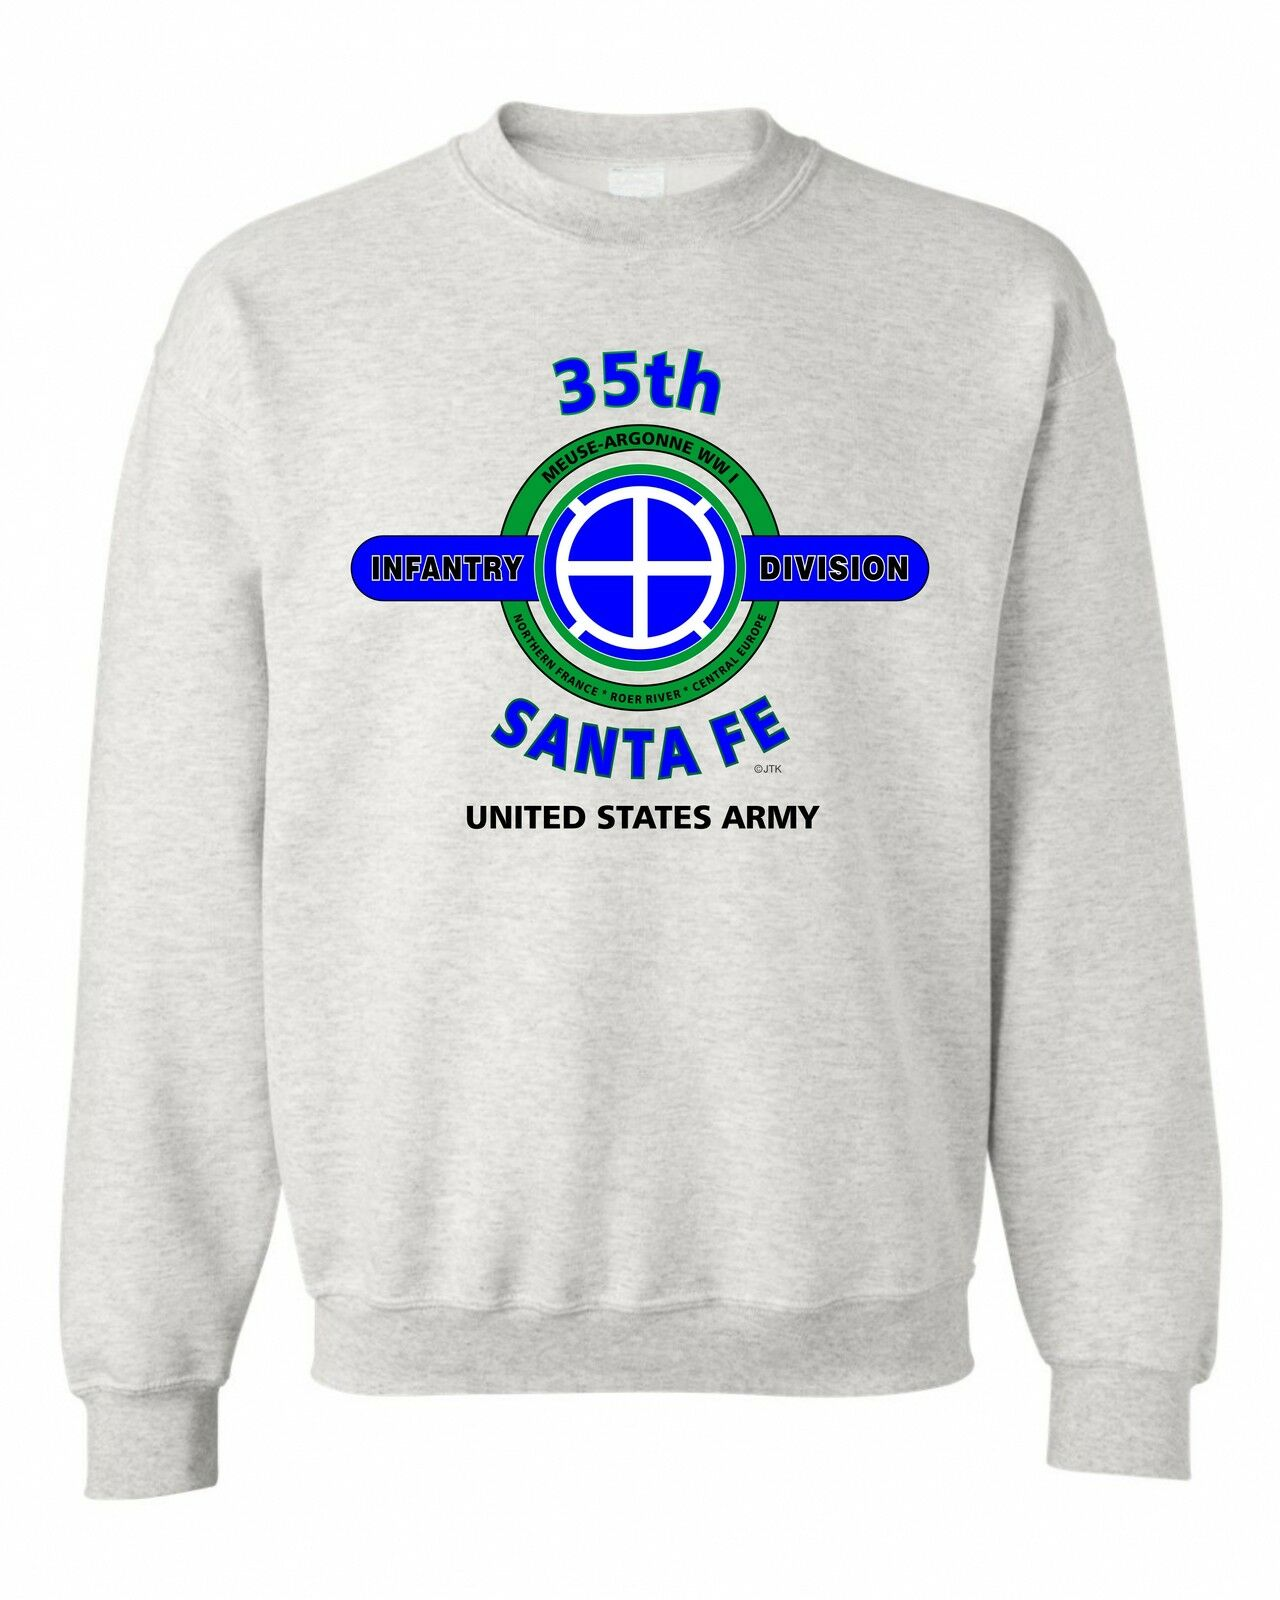 35TH INFANTRY DIVISION   SANTA FE   BATTLE & CAMPAIGN SWEATSHIRT